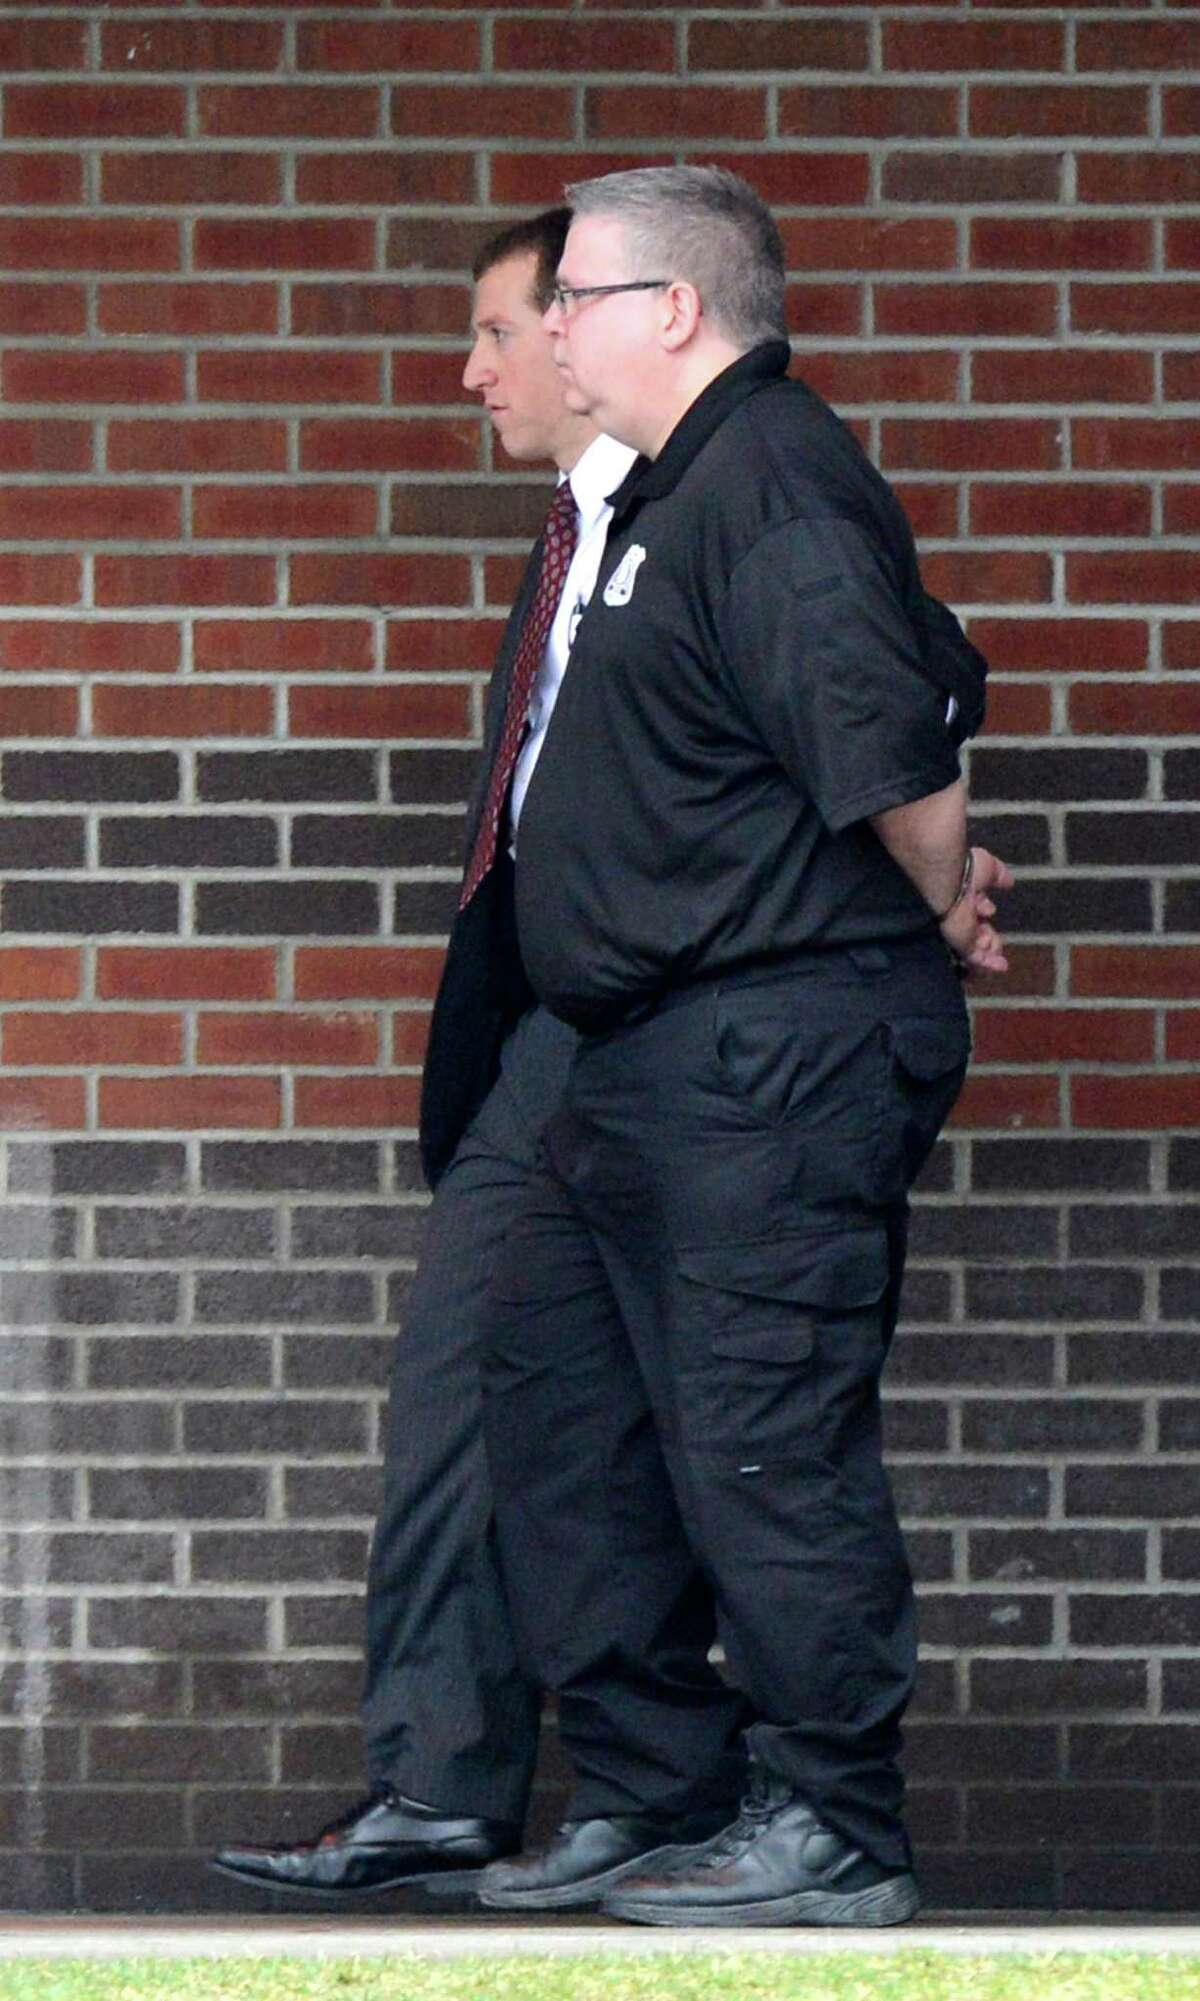 Albany County corrections officer James Cerniglia is escorted out of Albany County Jail after being arrested Wednesday morning, April 10, 2013, in Colonie, N.Y. Cerniglia is accused of running a Capital Region bookmaking ring in which bets and payoffs were routinely taking place at the jail. (Skip Dickstein/Times Union)